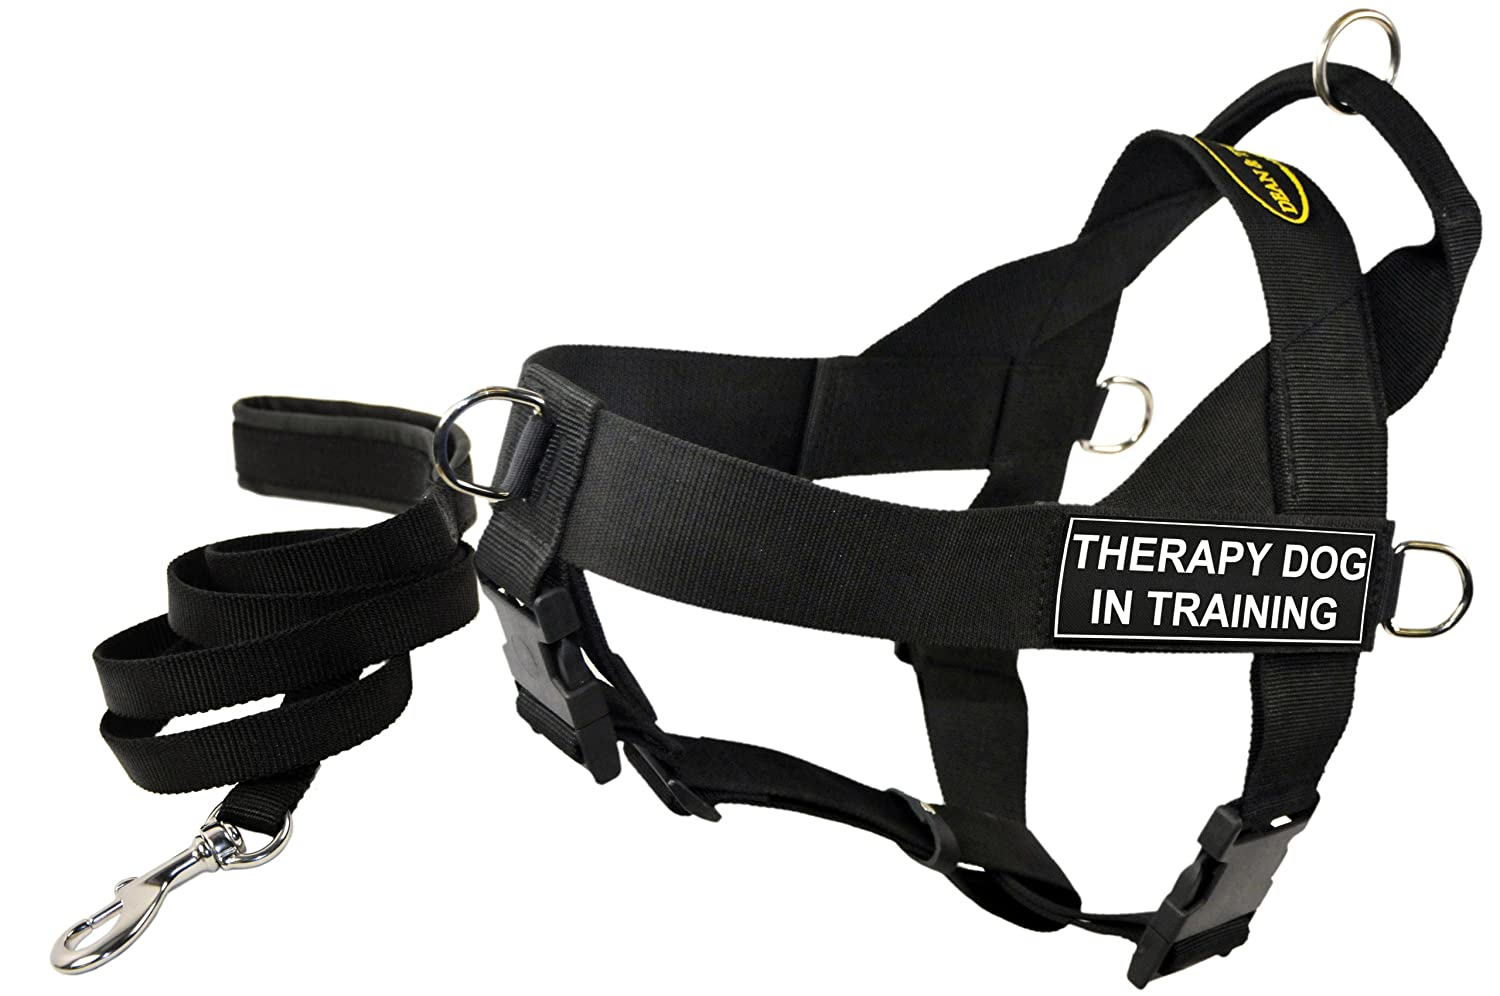 Dean and Tyler Bundle One DT Universal Harness, Therapy Dog in Training, XS (21, 25) + One Padded Puppy Leash, 6-Feet Stainless Snap, Black